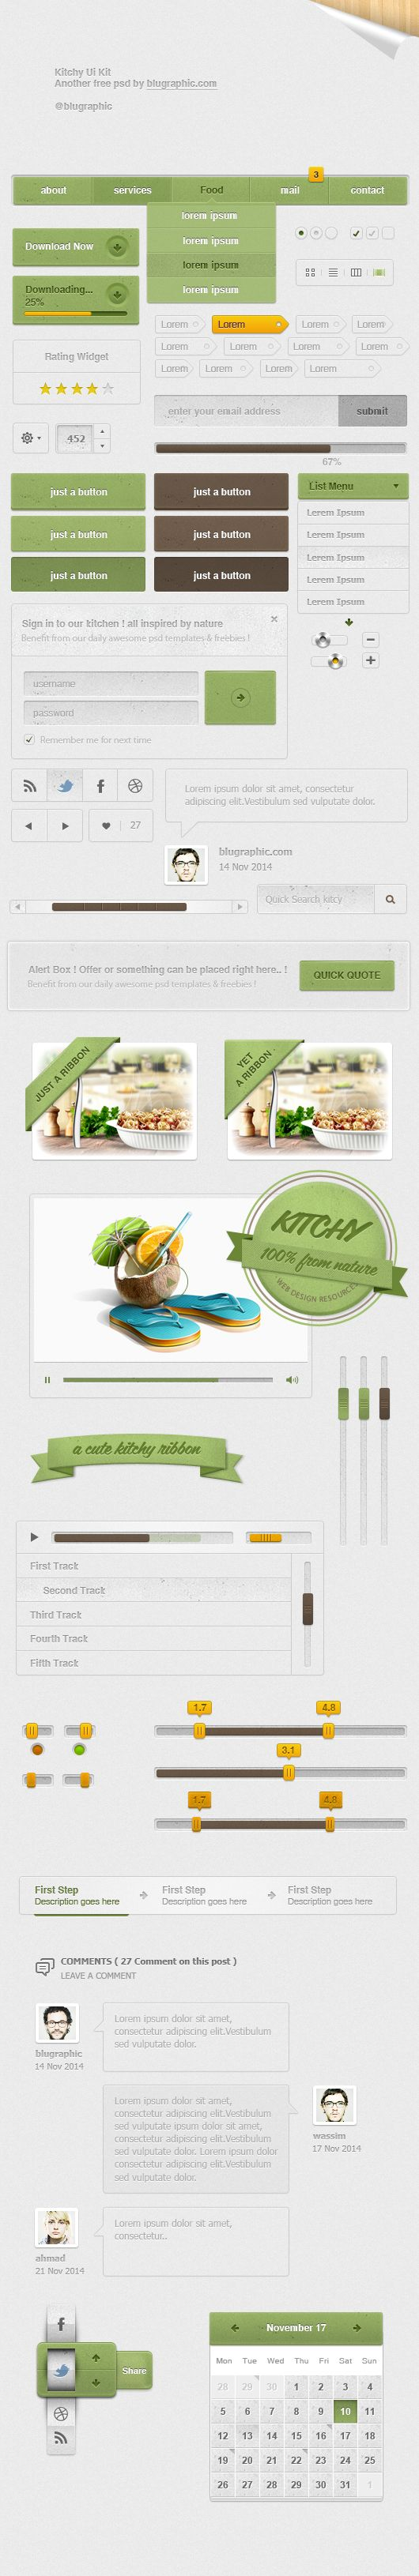 Kitchy Mega Ui Kit - psd theme